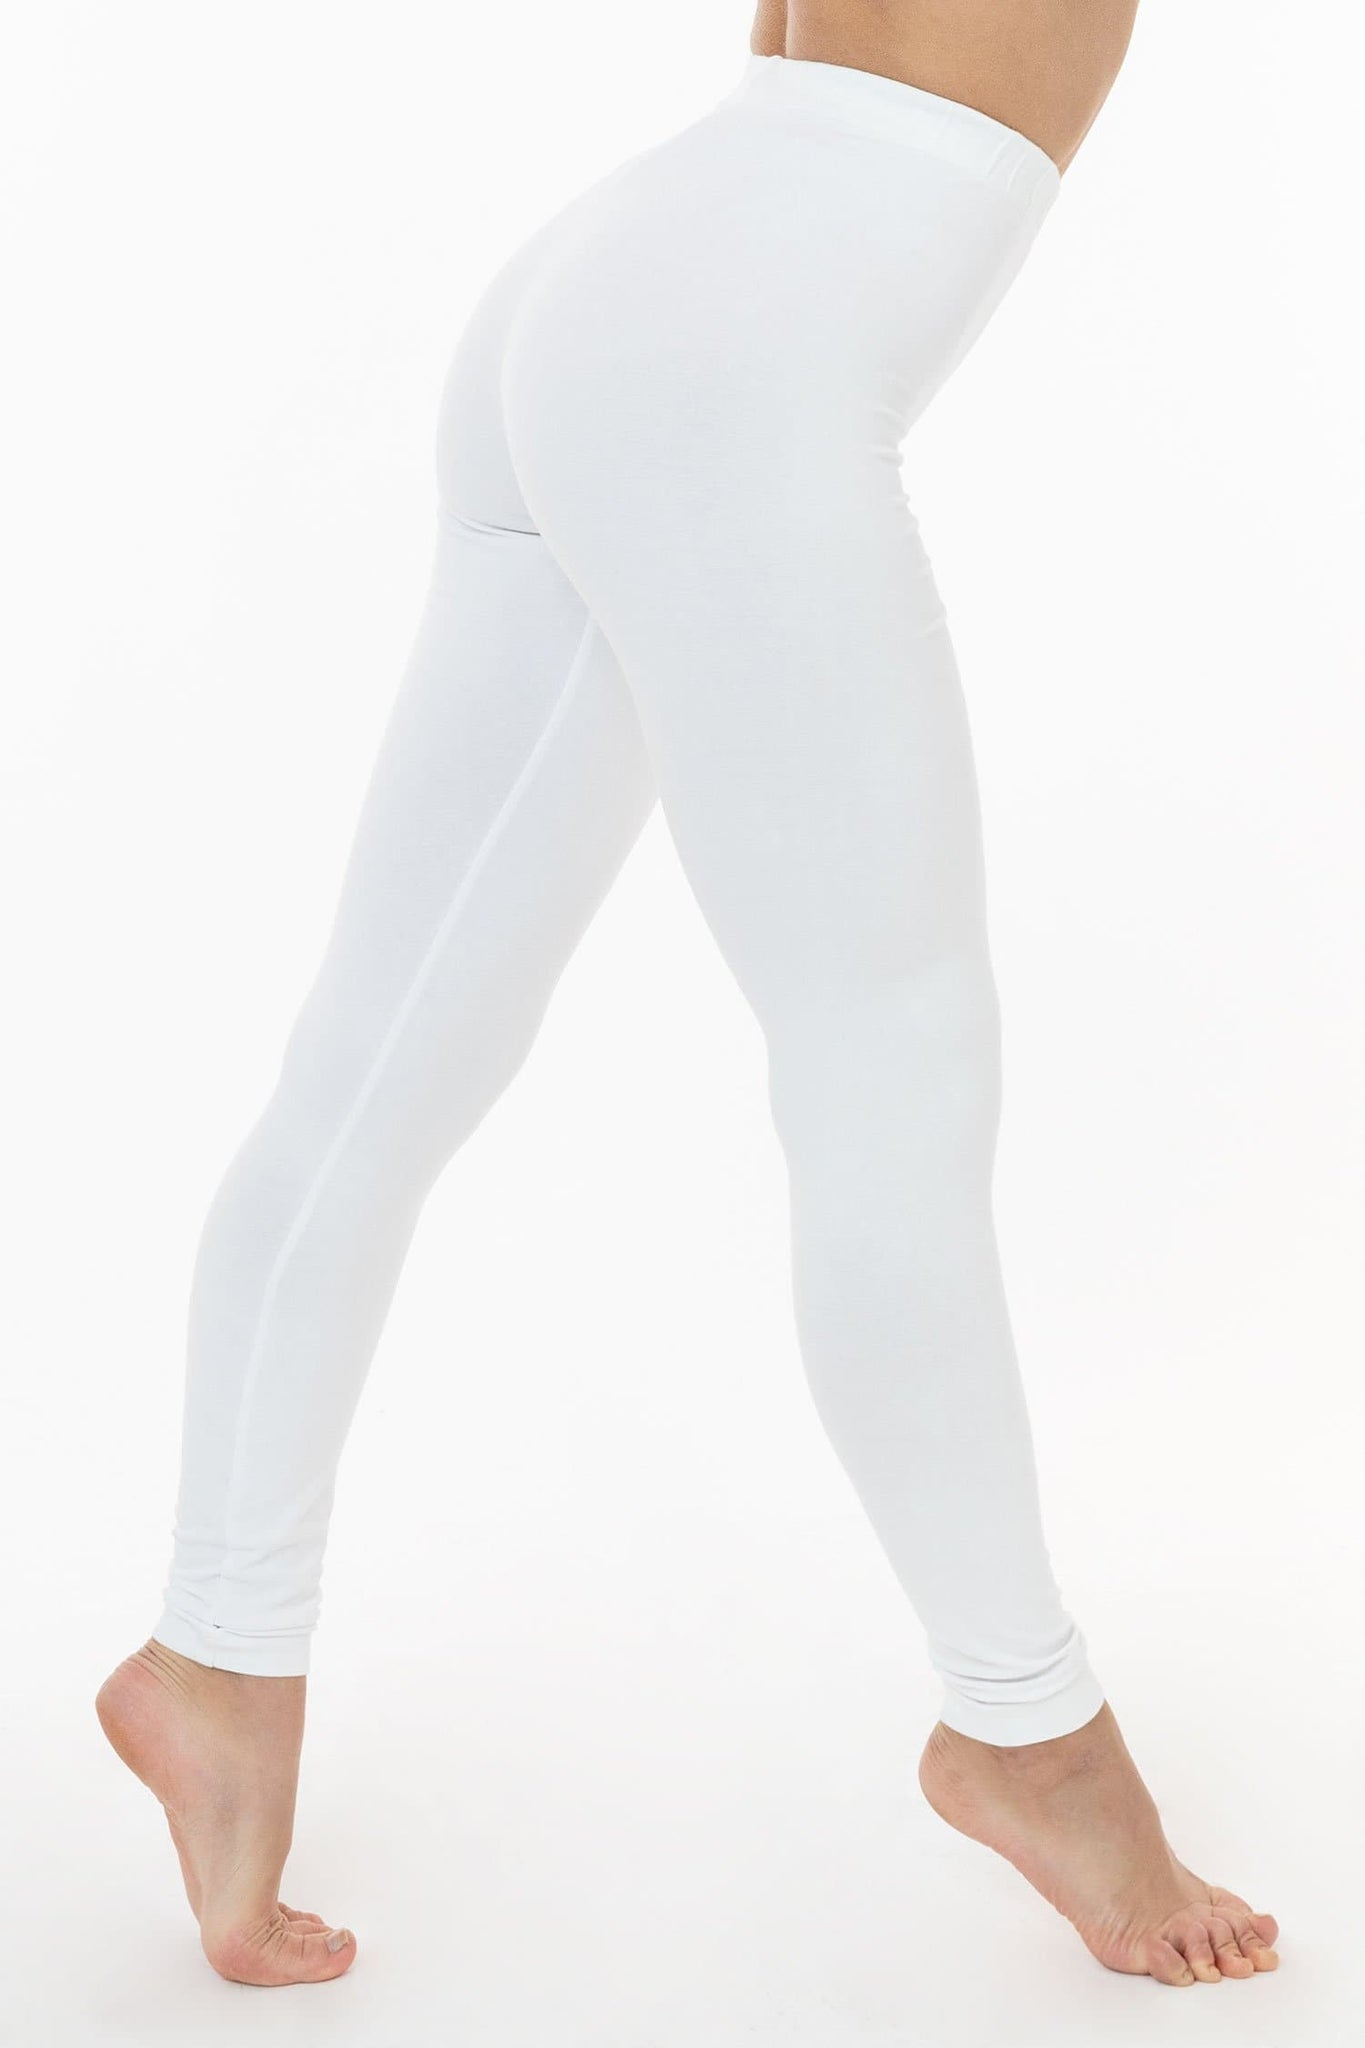 83280GD - Garment Dye Legging